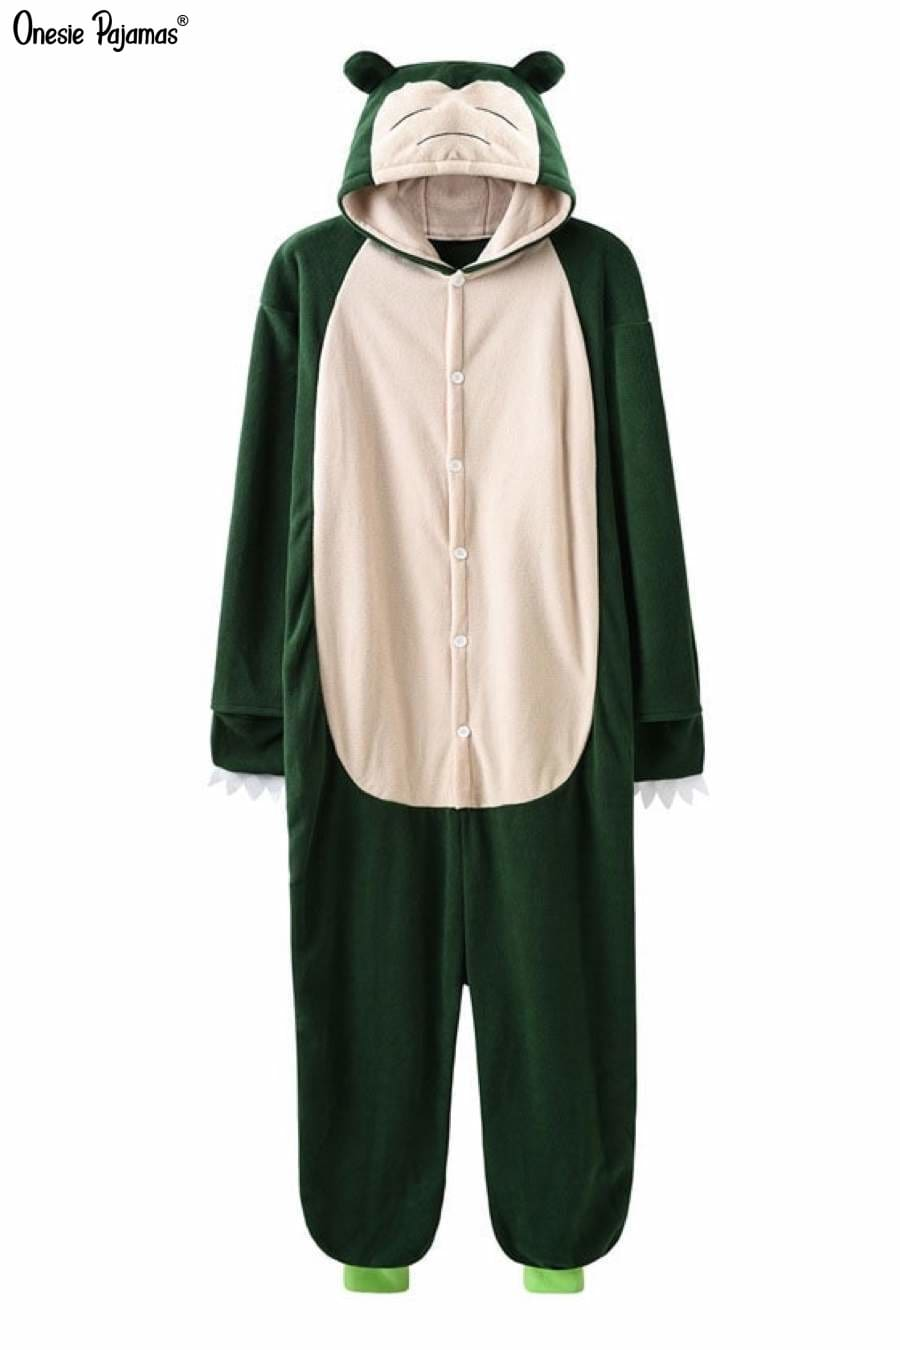 Snorlax onesie for women and men